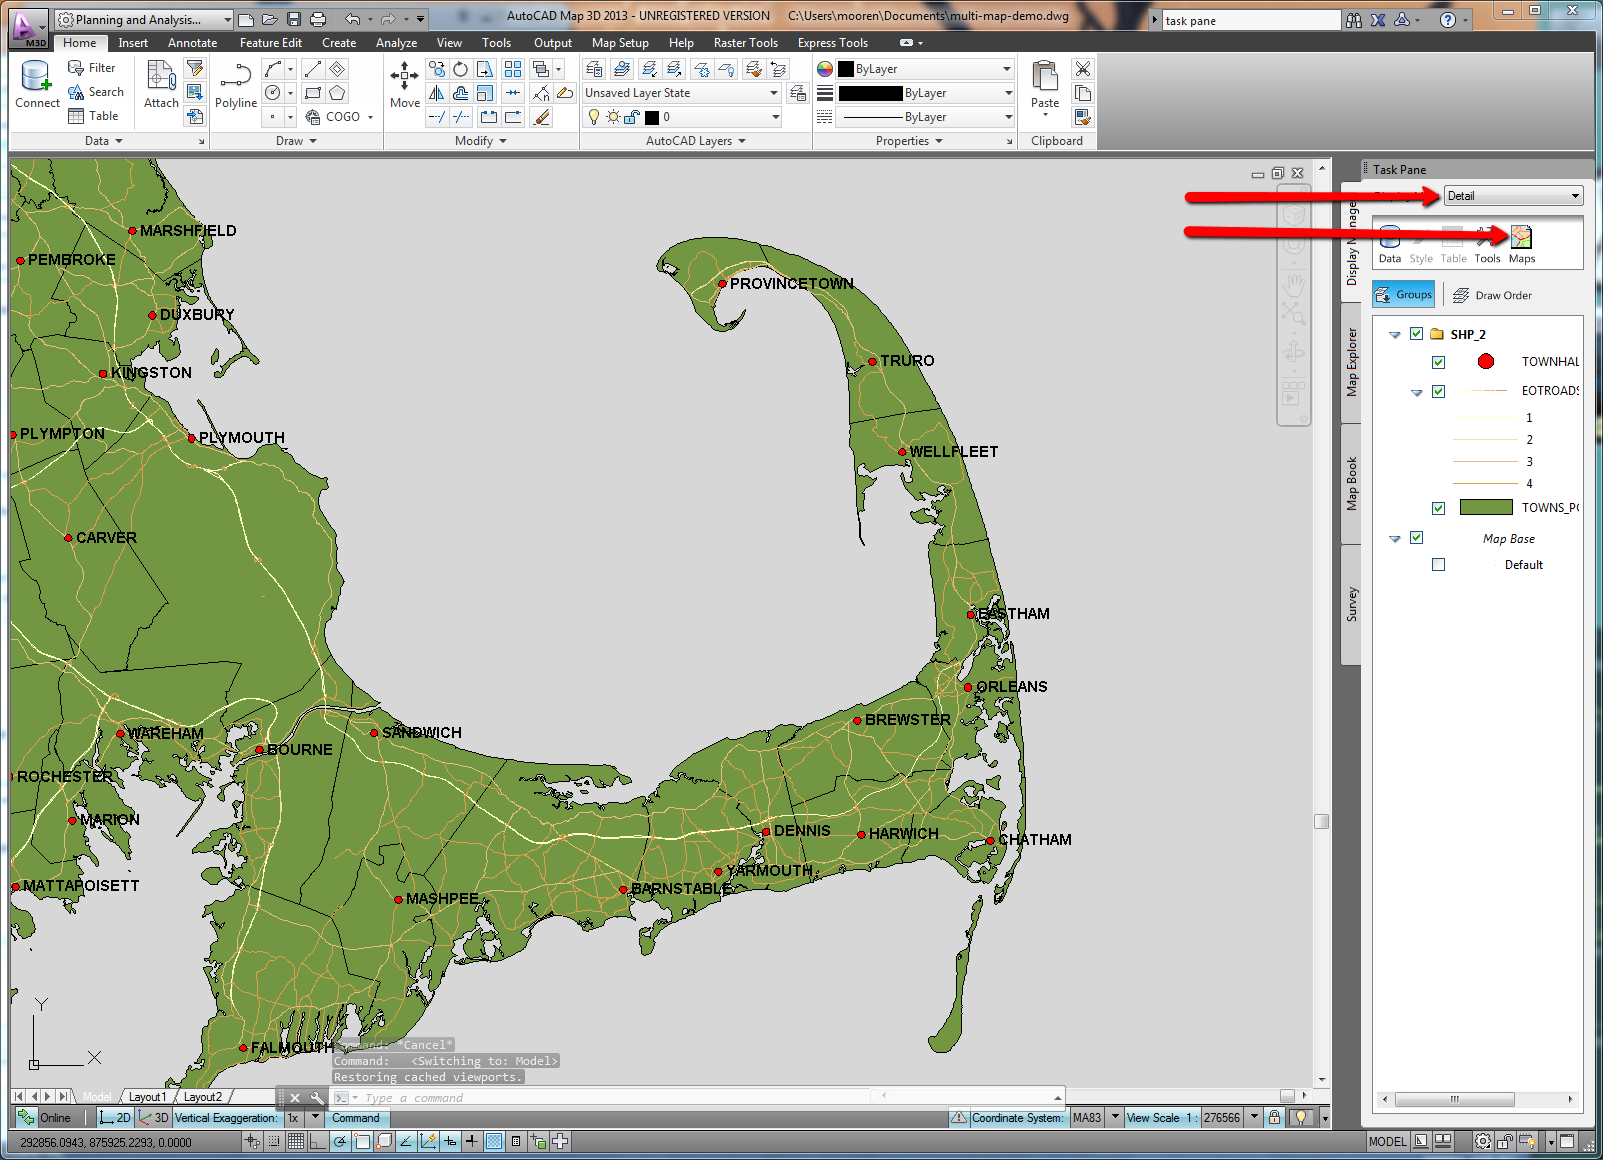 Being civil autocad map 3d 2013 new feature multiple maps and then i made a second more detailed map to make the second map click the maps button new in 2013 then select new and give it a name then create the new sciox Images